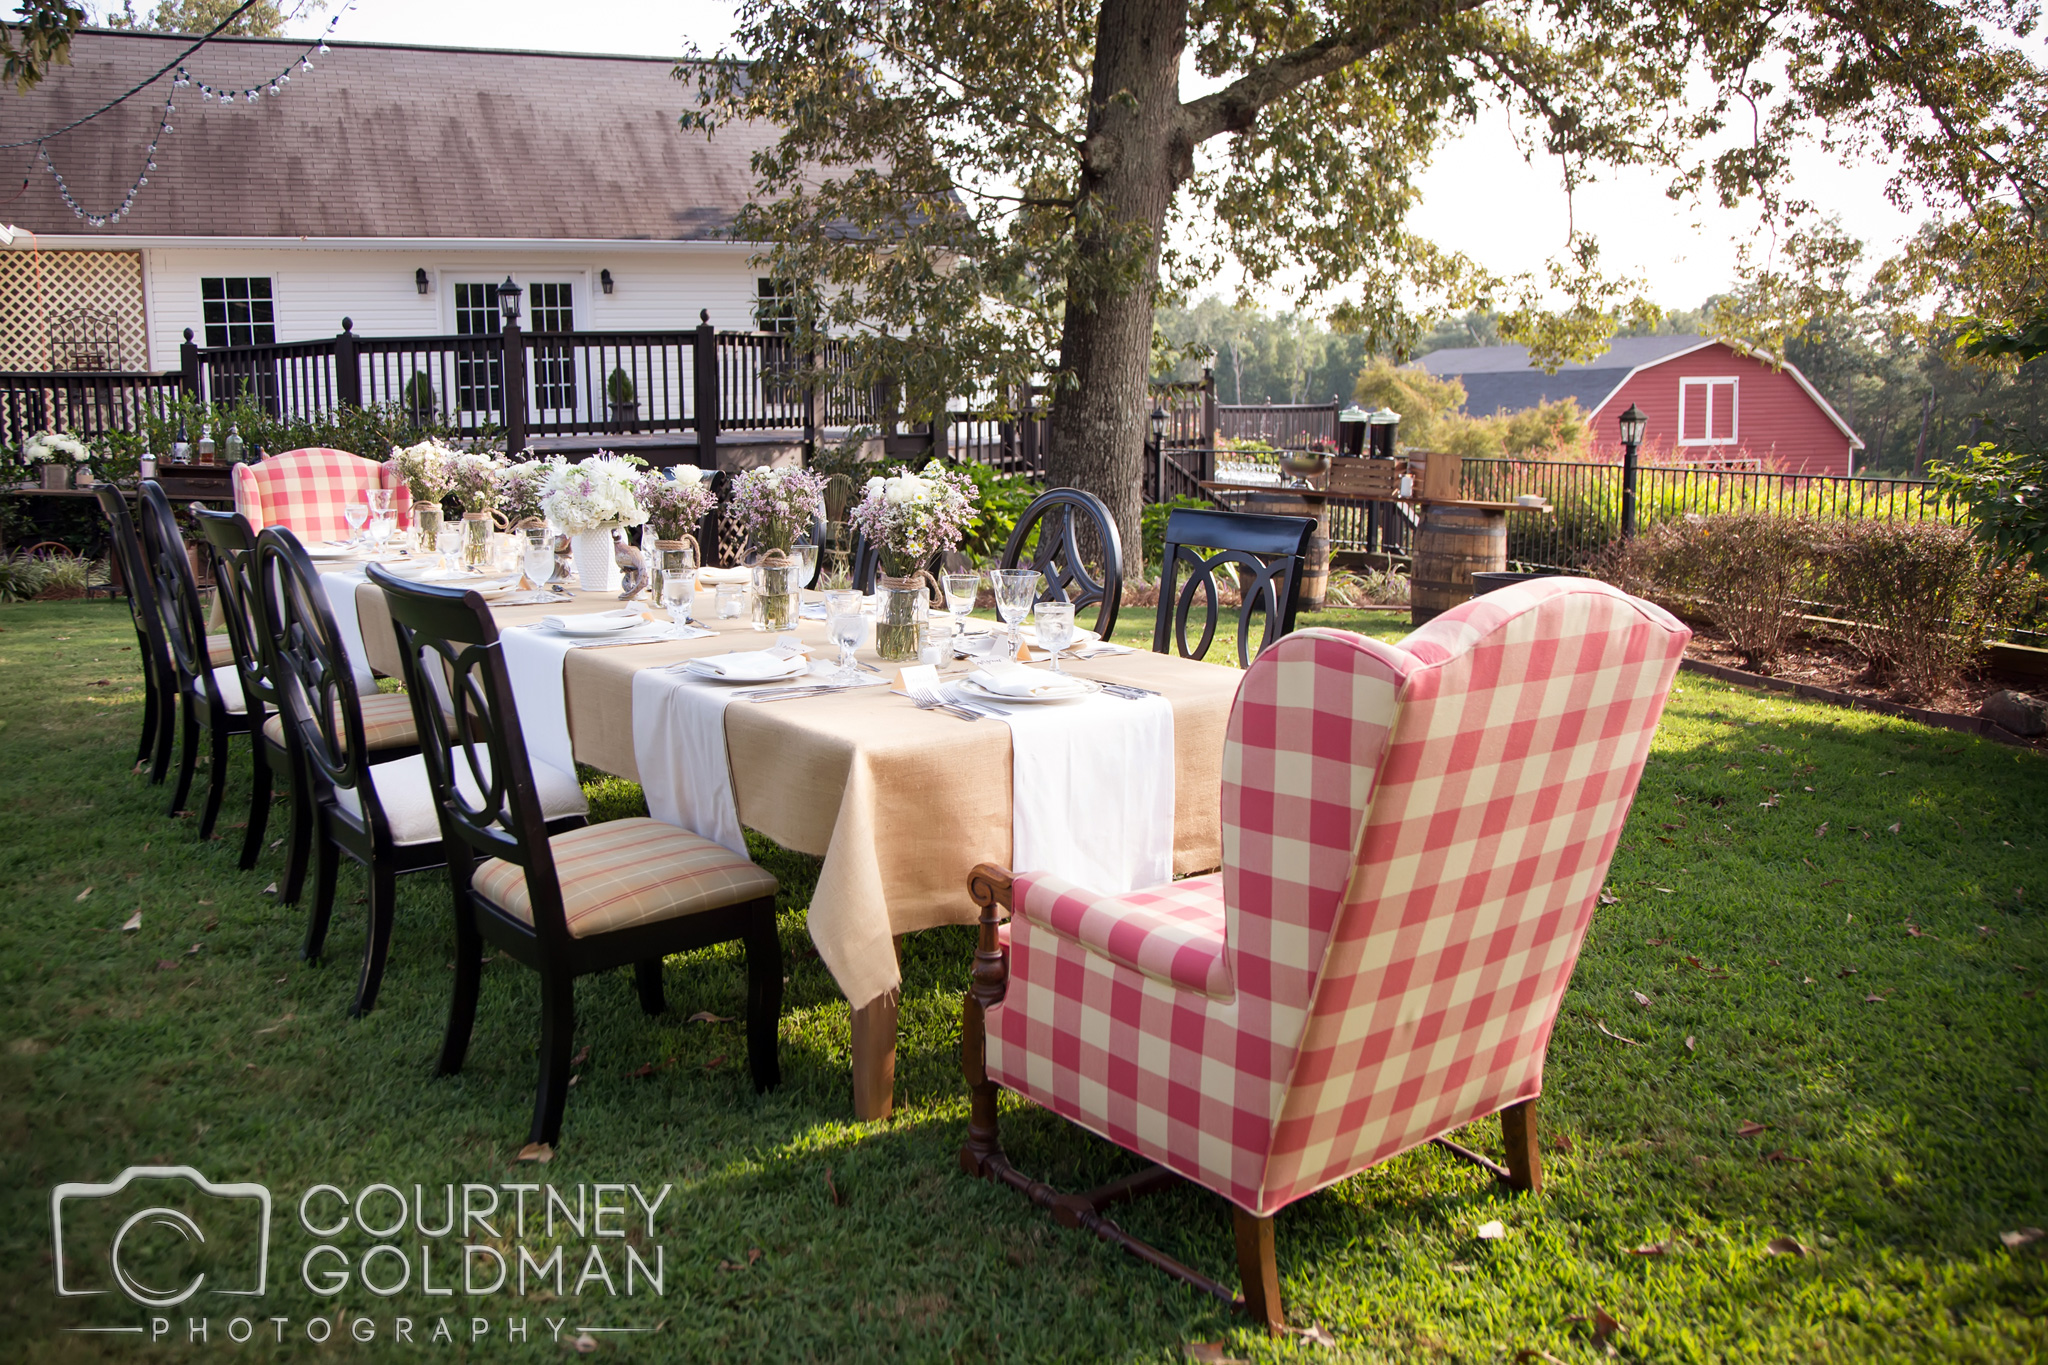 Backyard-Summer-Dinner-Birthday-in-Georgia-with-A-Divine-Event-by-Courtney-Goldman-Photography-06.jpg